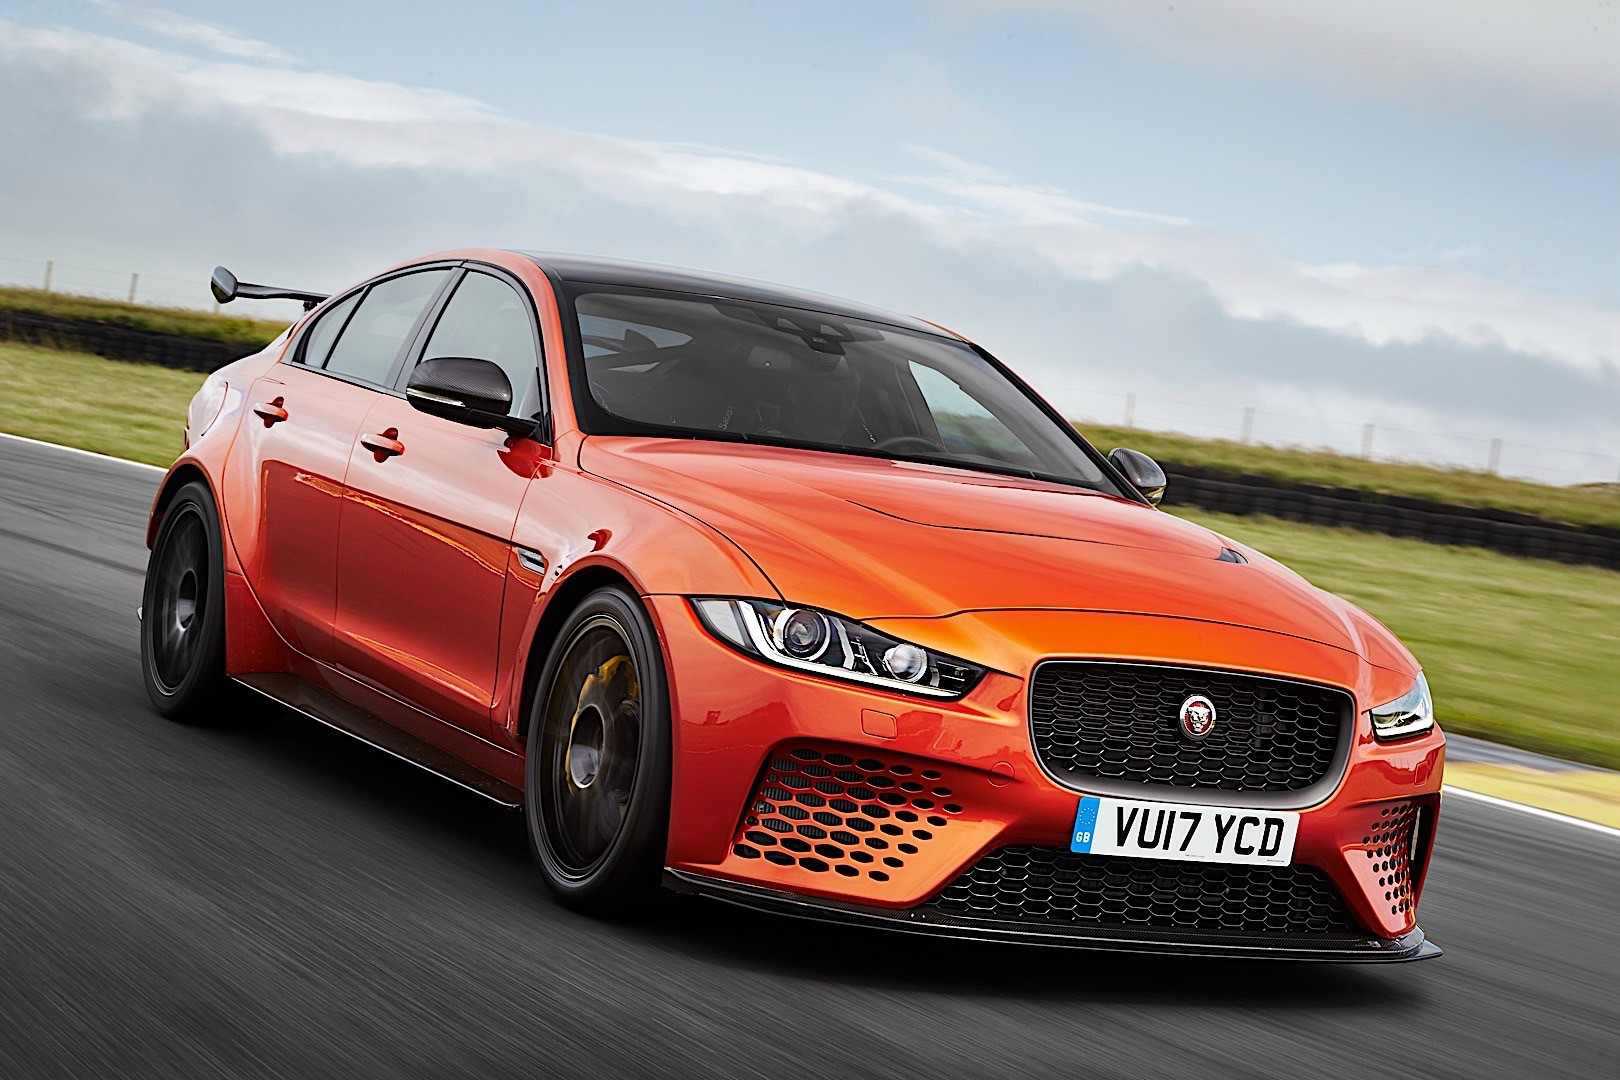 jaguar xe sv project 8 specs 2017 2018 autoevolution. Black Bedroom Furniture Sets. Home Design Ideas